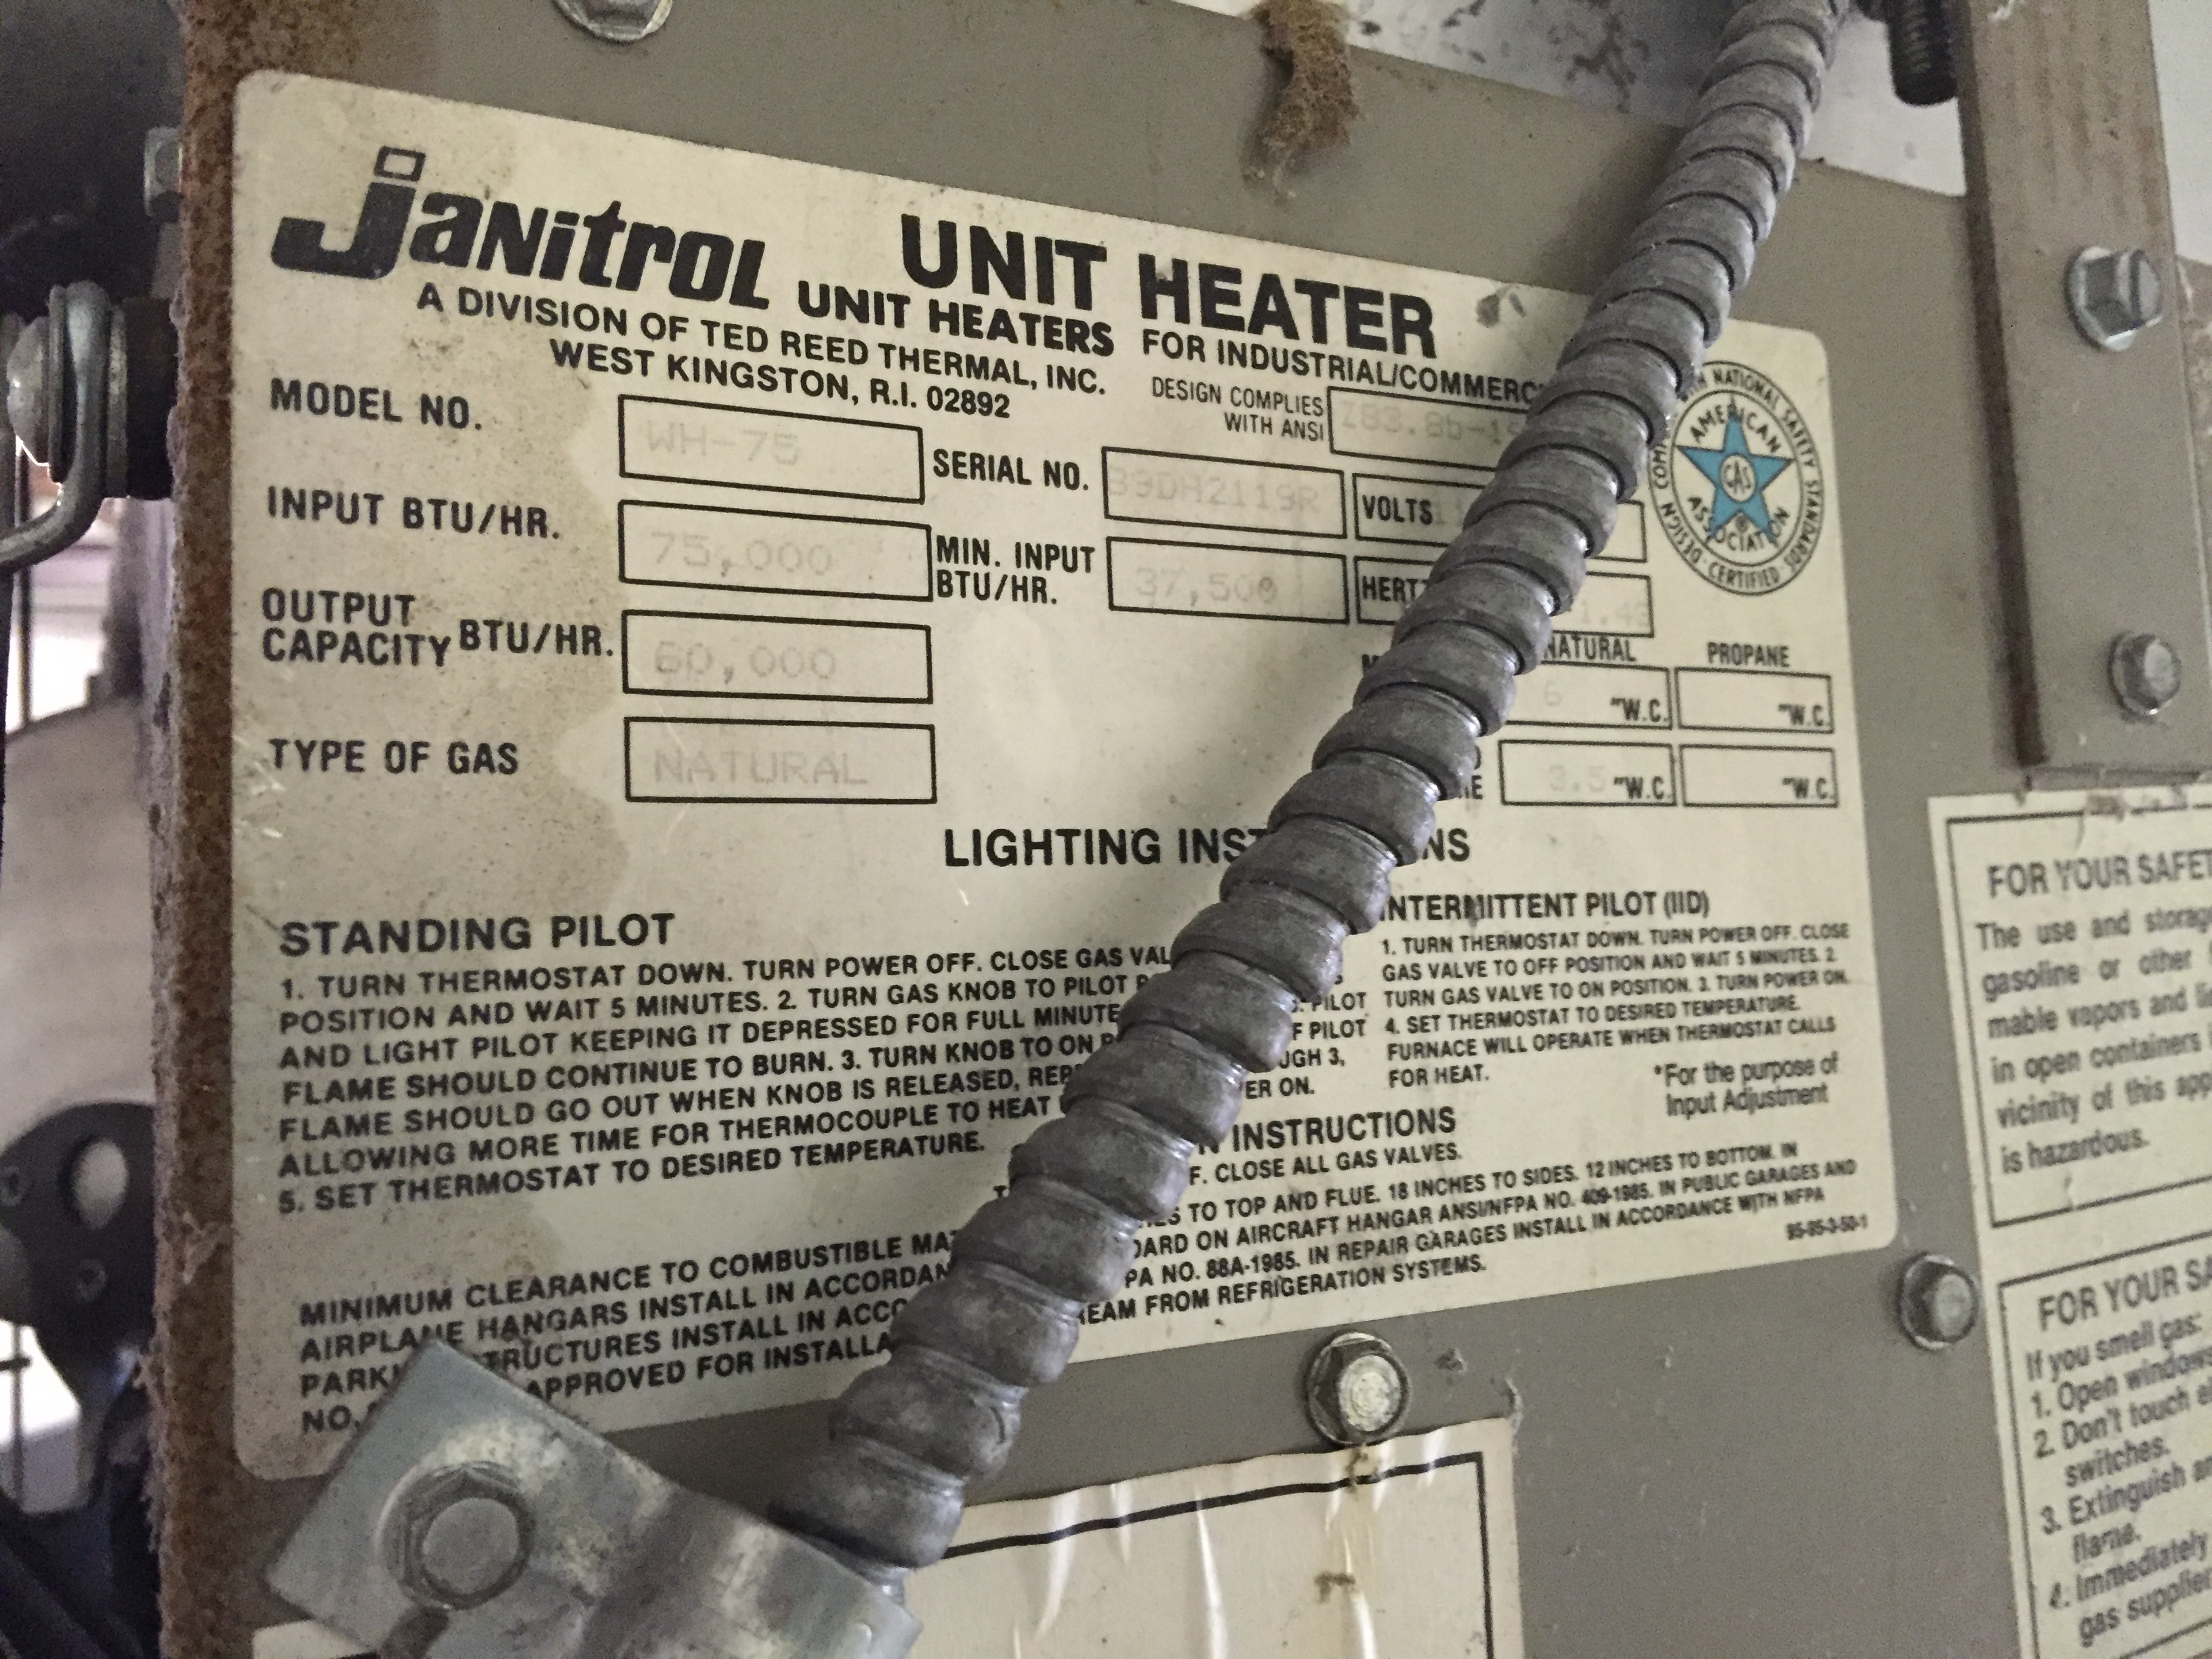 i have 2 janitrol wh 100 heaters i have not used them for